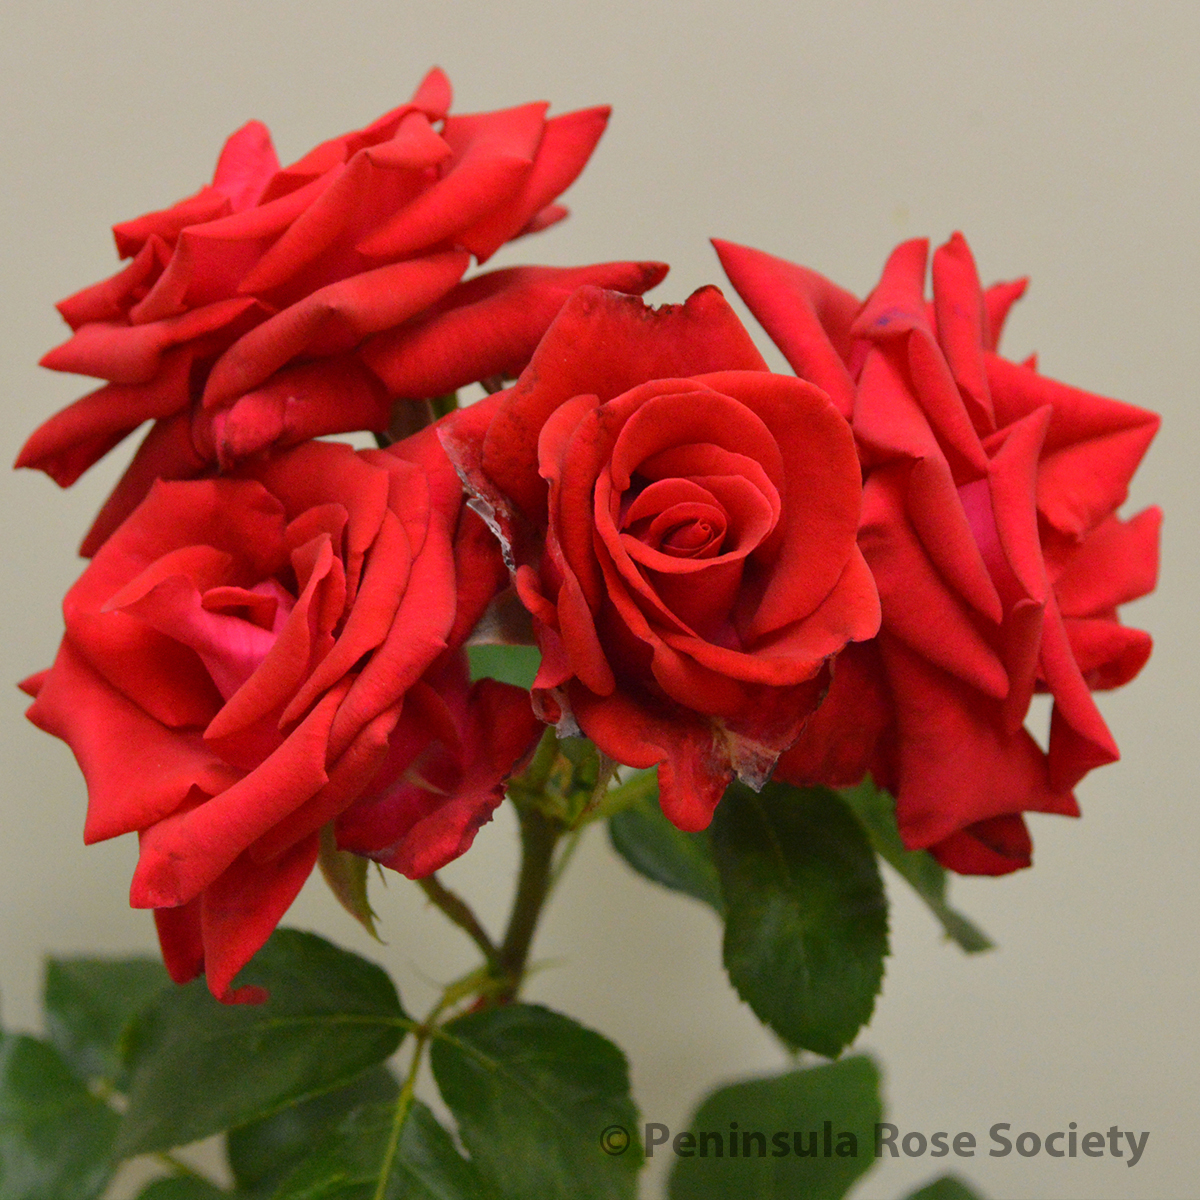 Diana Princess Of Wales Rose 2015 Annual Rose Show Results Horticulture Peninsula